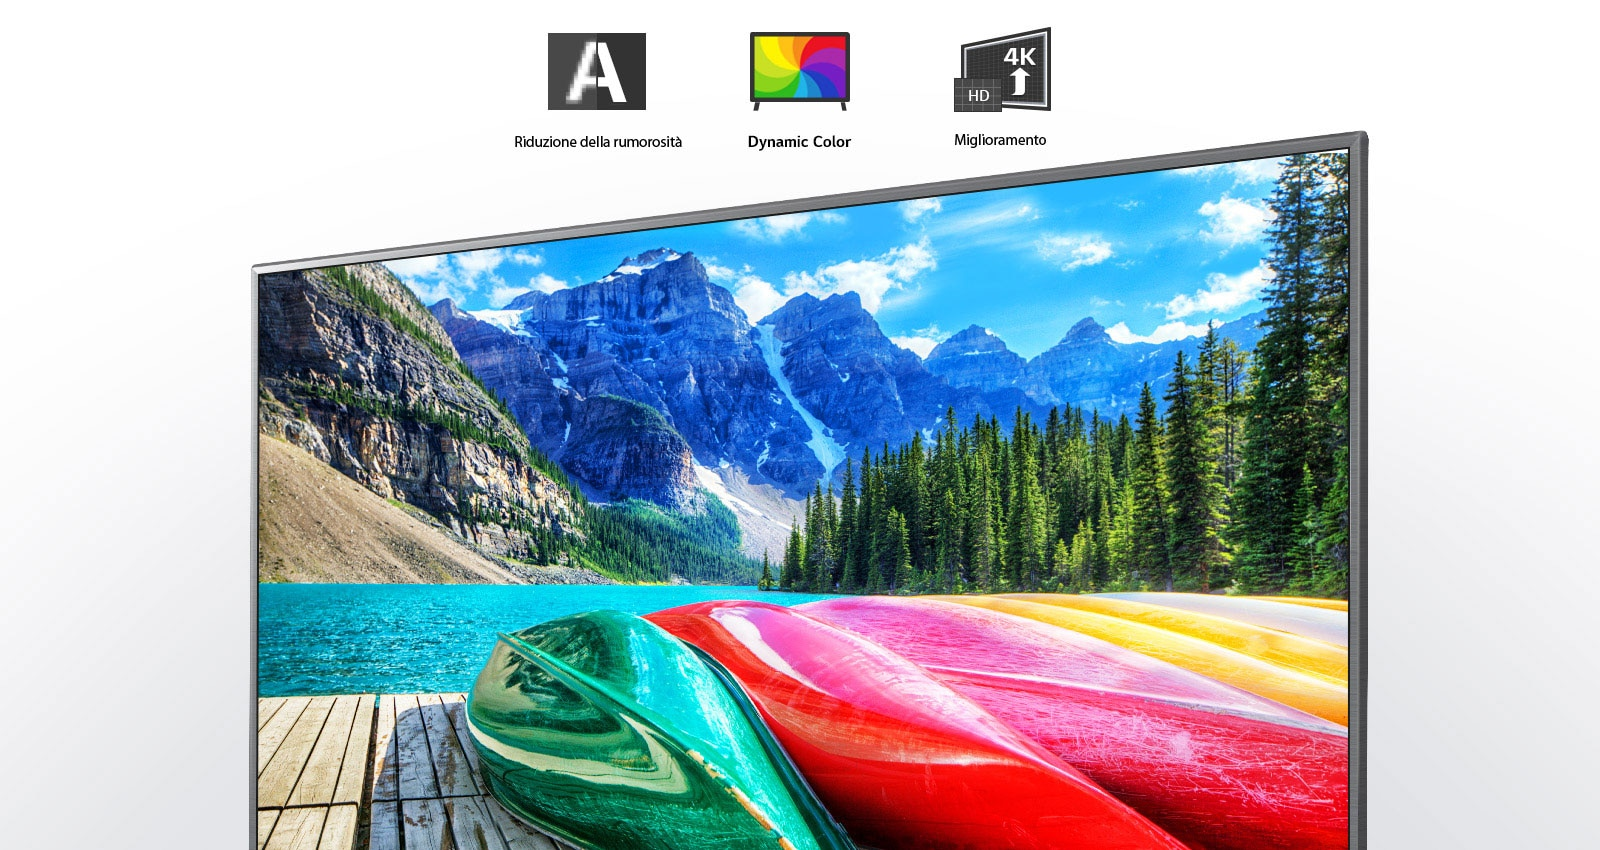 Noise reduction, Dynamic Color and enhancement icons, and a TV screen showing a landscape with mountains, forests and a lake